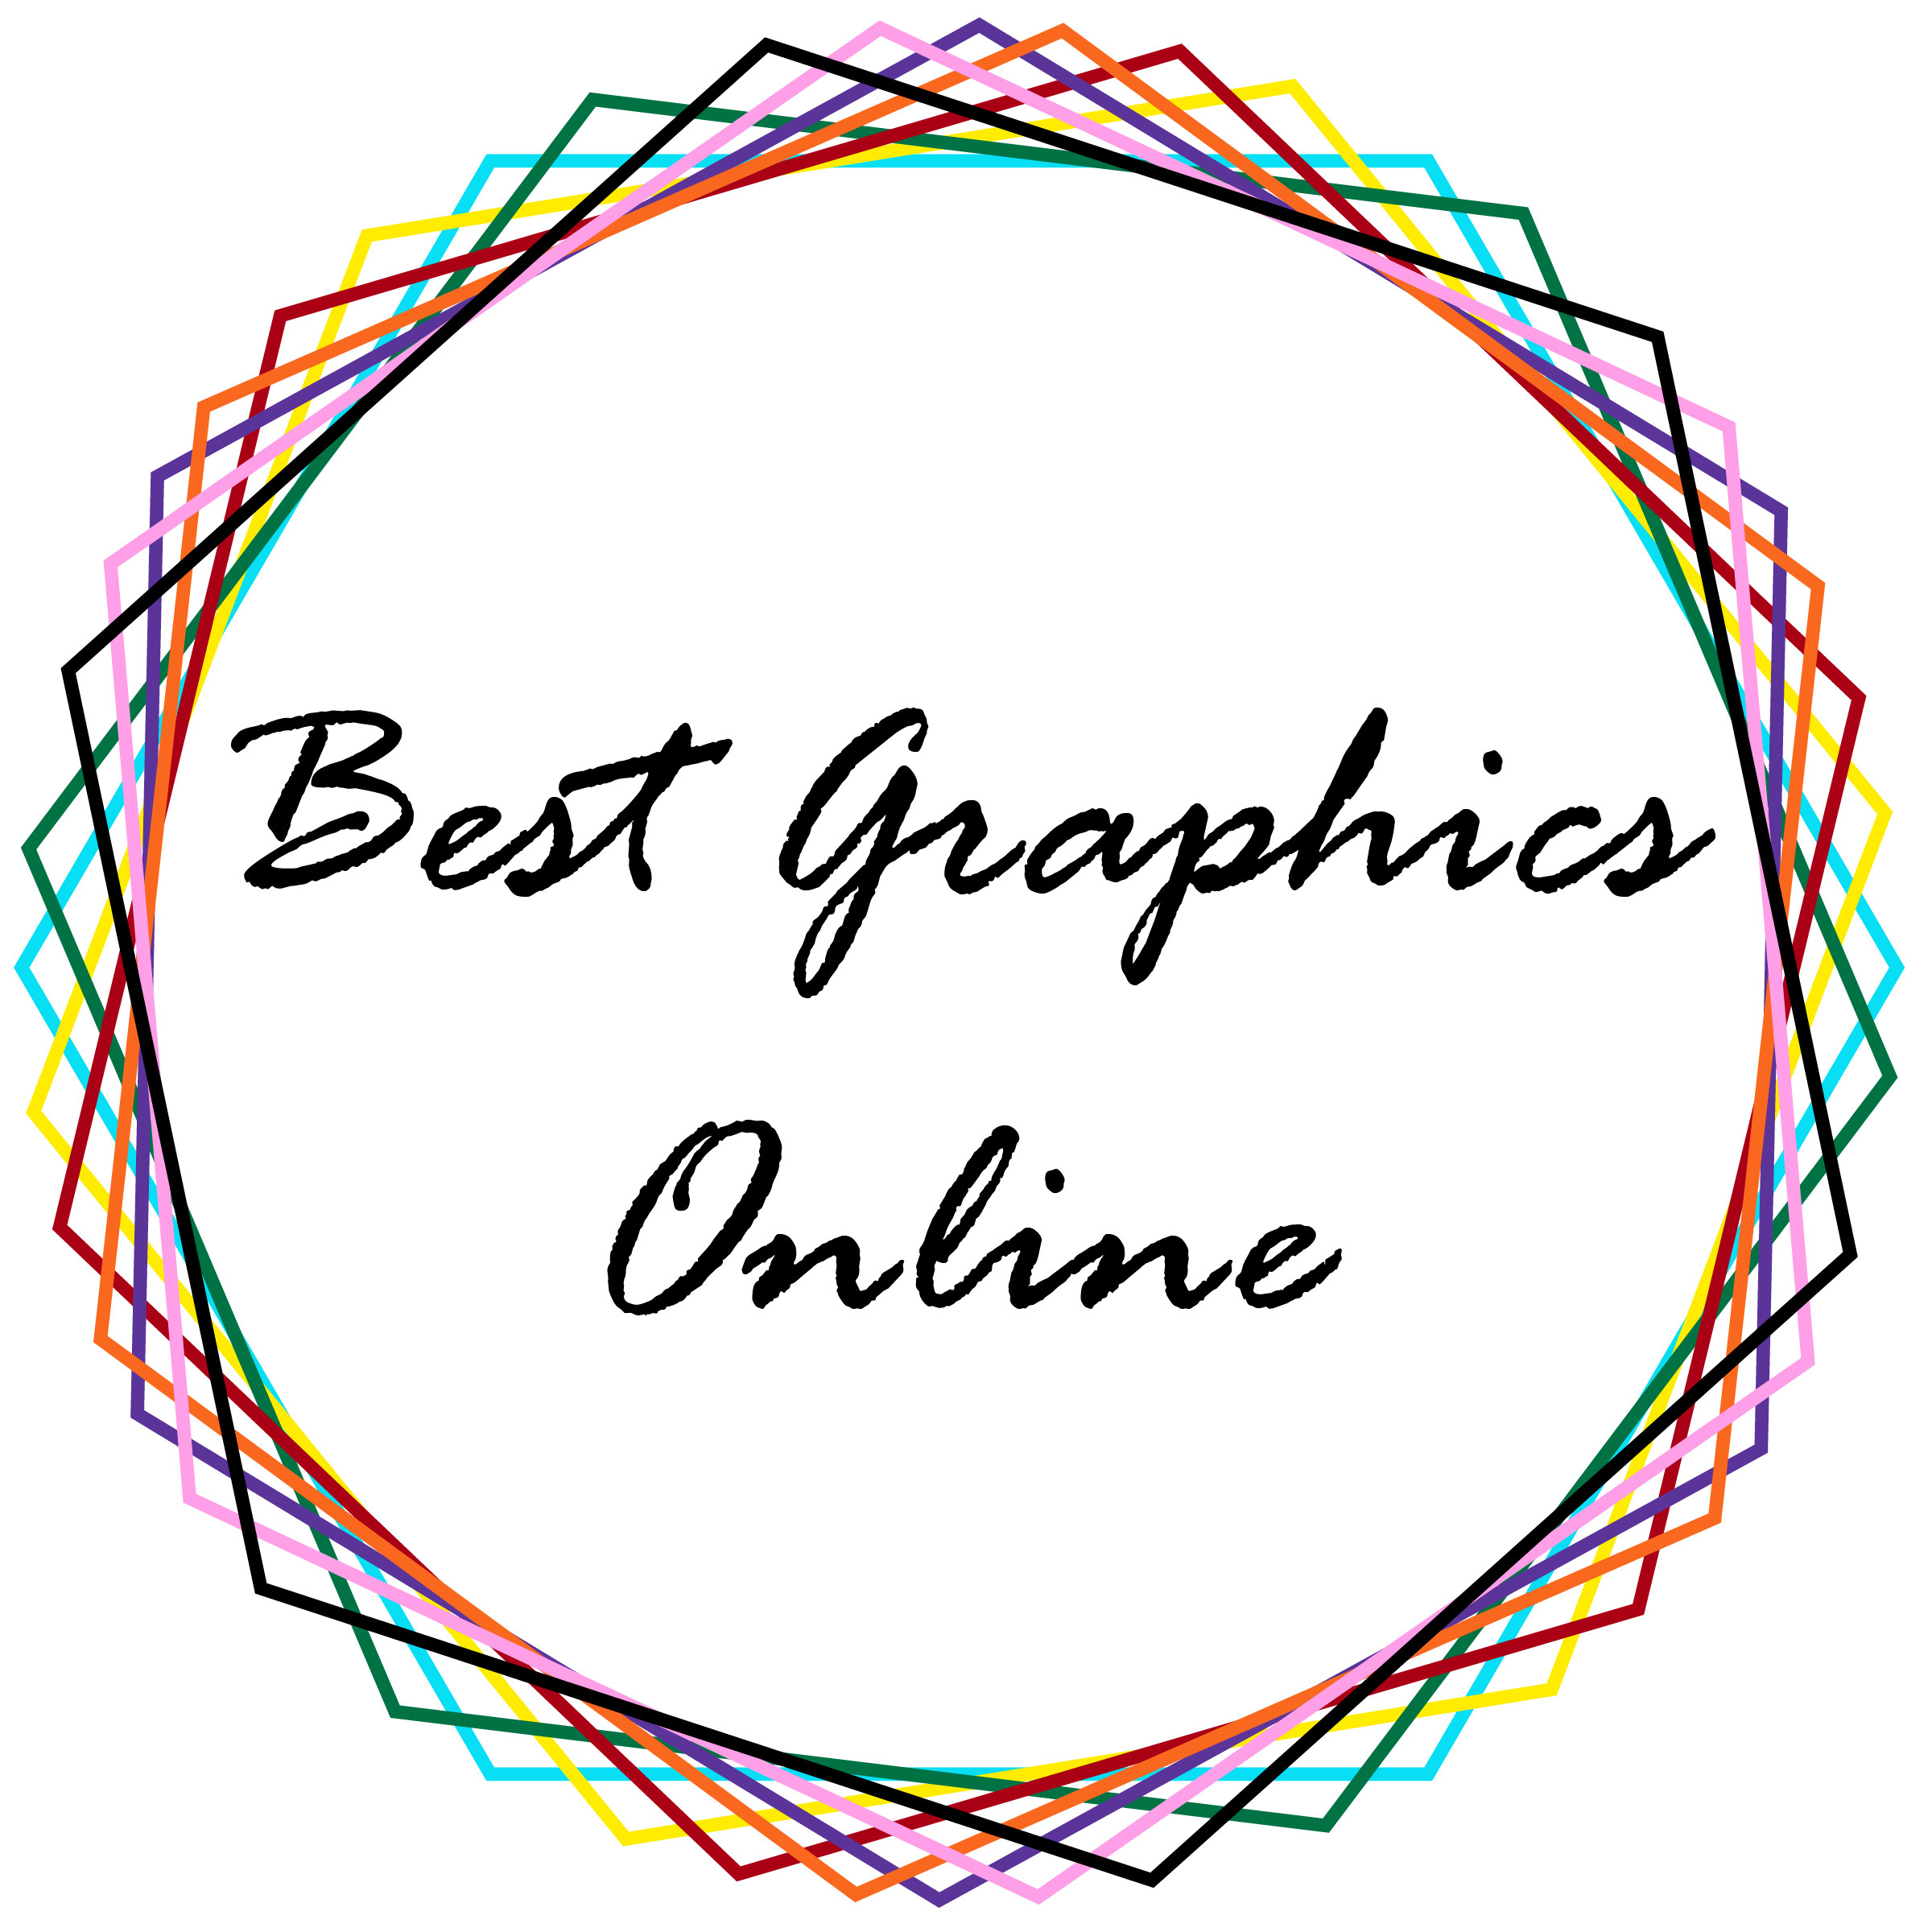 Bestgraphicsonline's profile picture